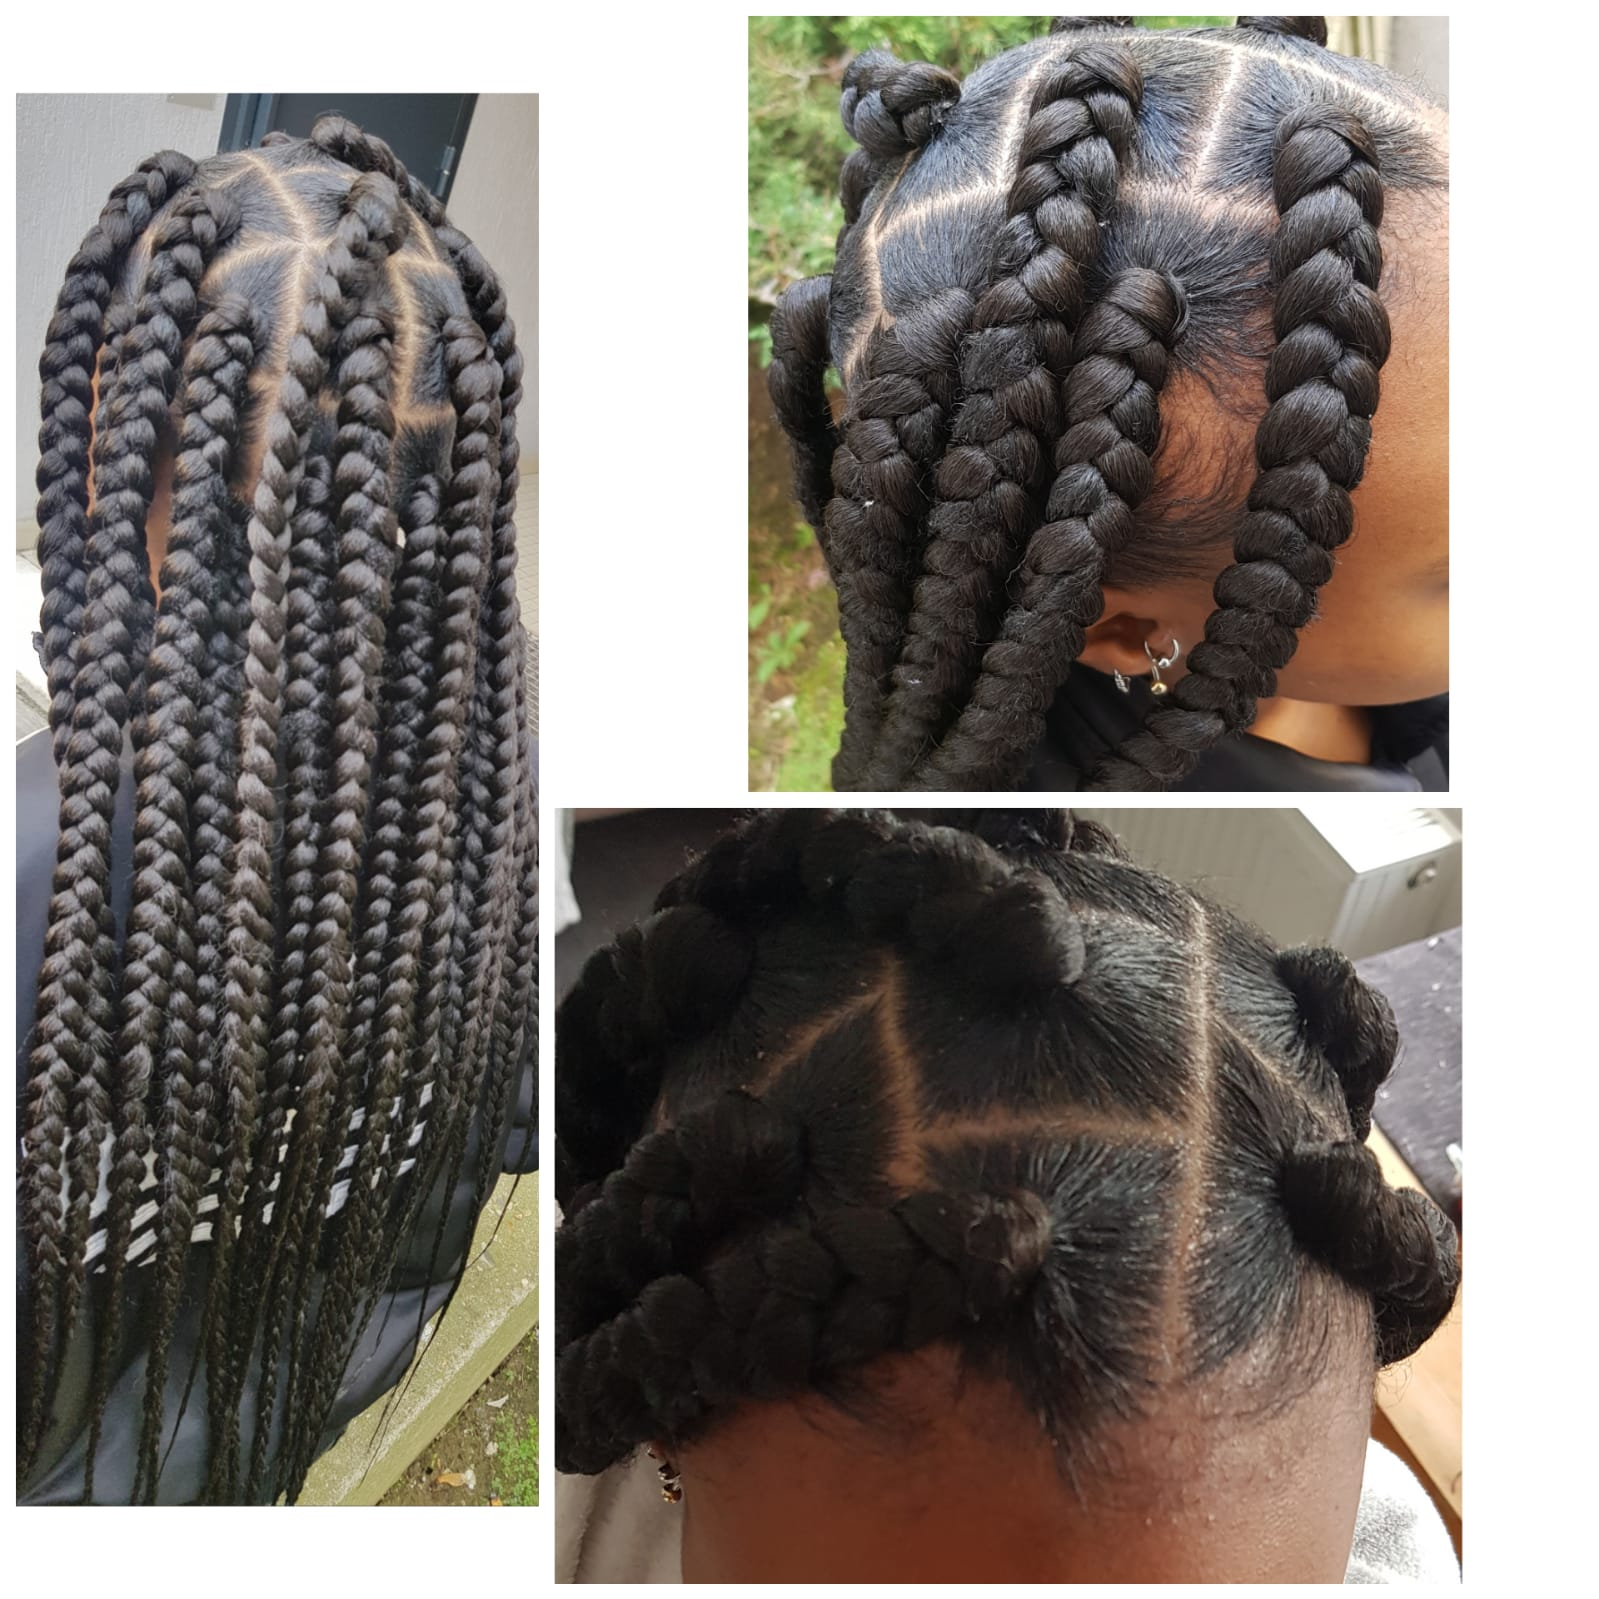 salon de coiffure afro tresse tresses box braids crochet braids vanilles tissages paris 75 77 78 91 92 93 94 95 FXSQJNIF